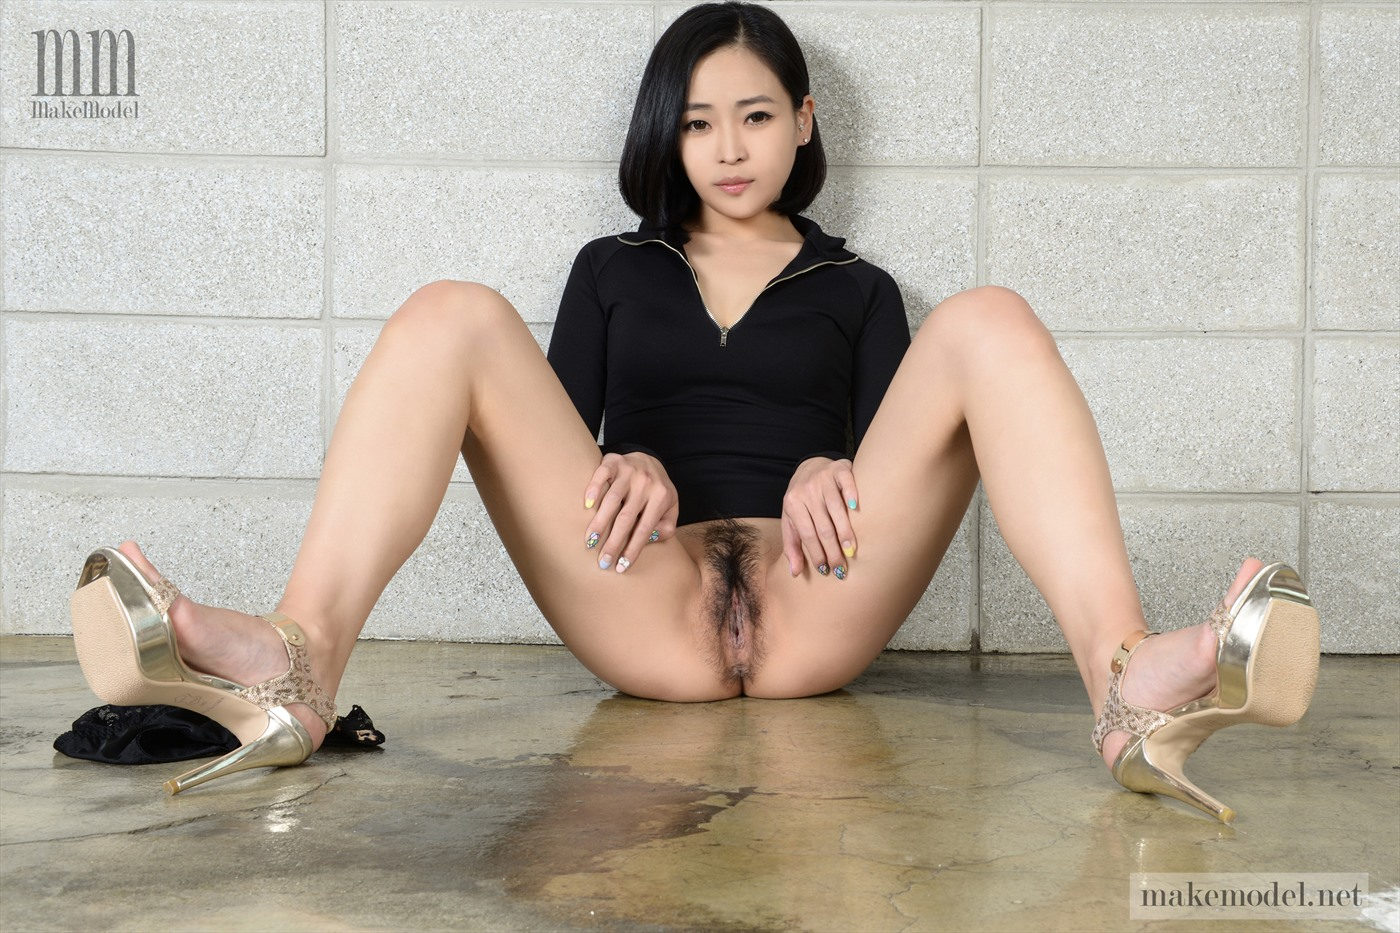 Sorry, that Nude korean girls hairy pussy can